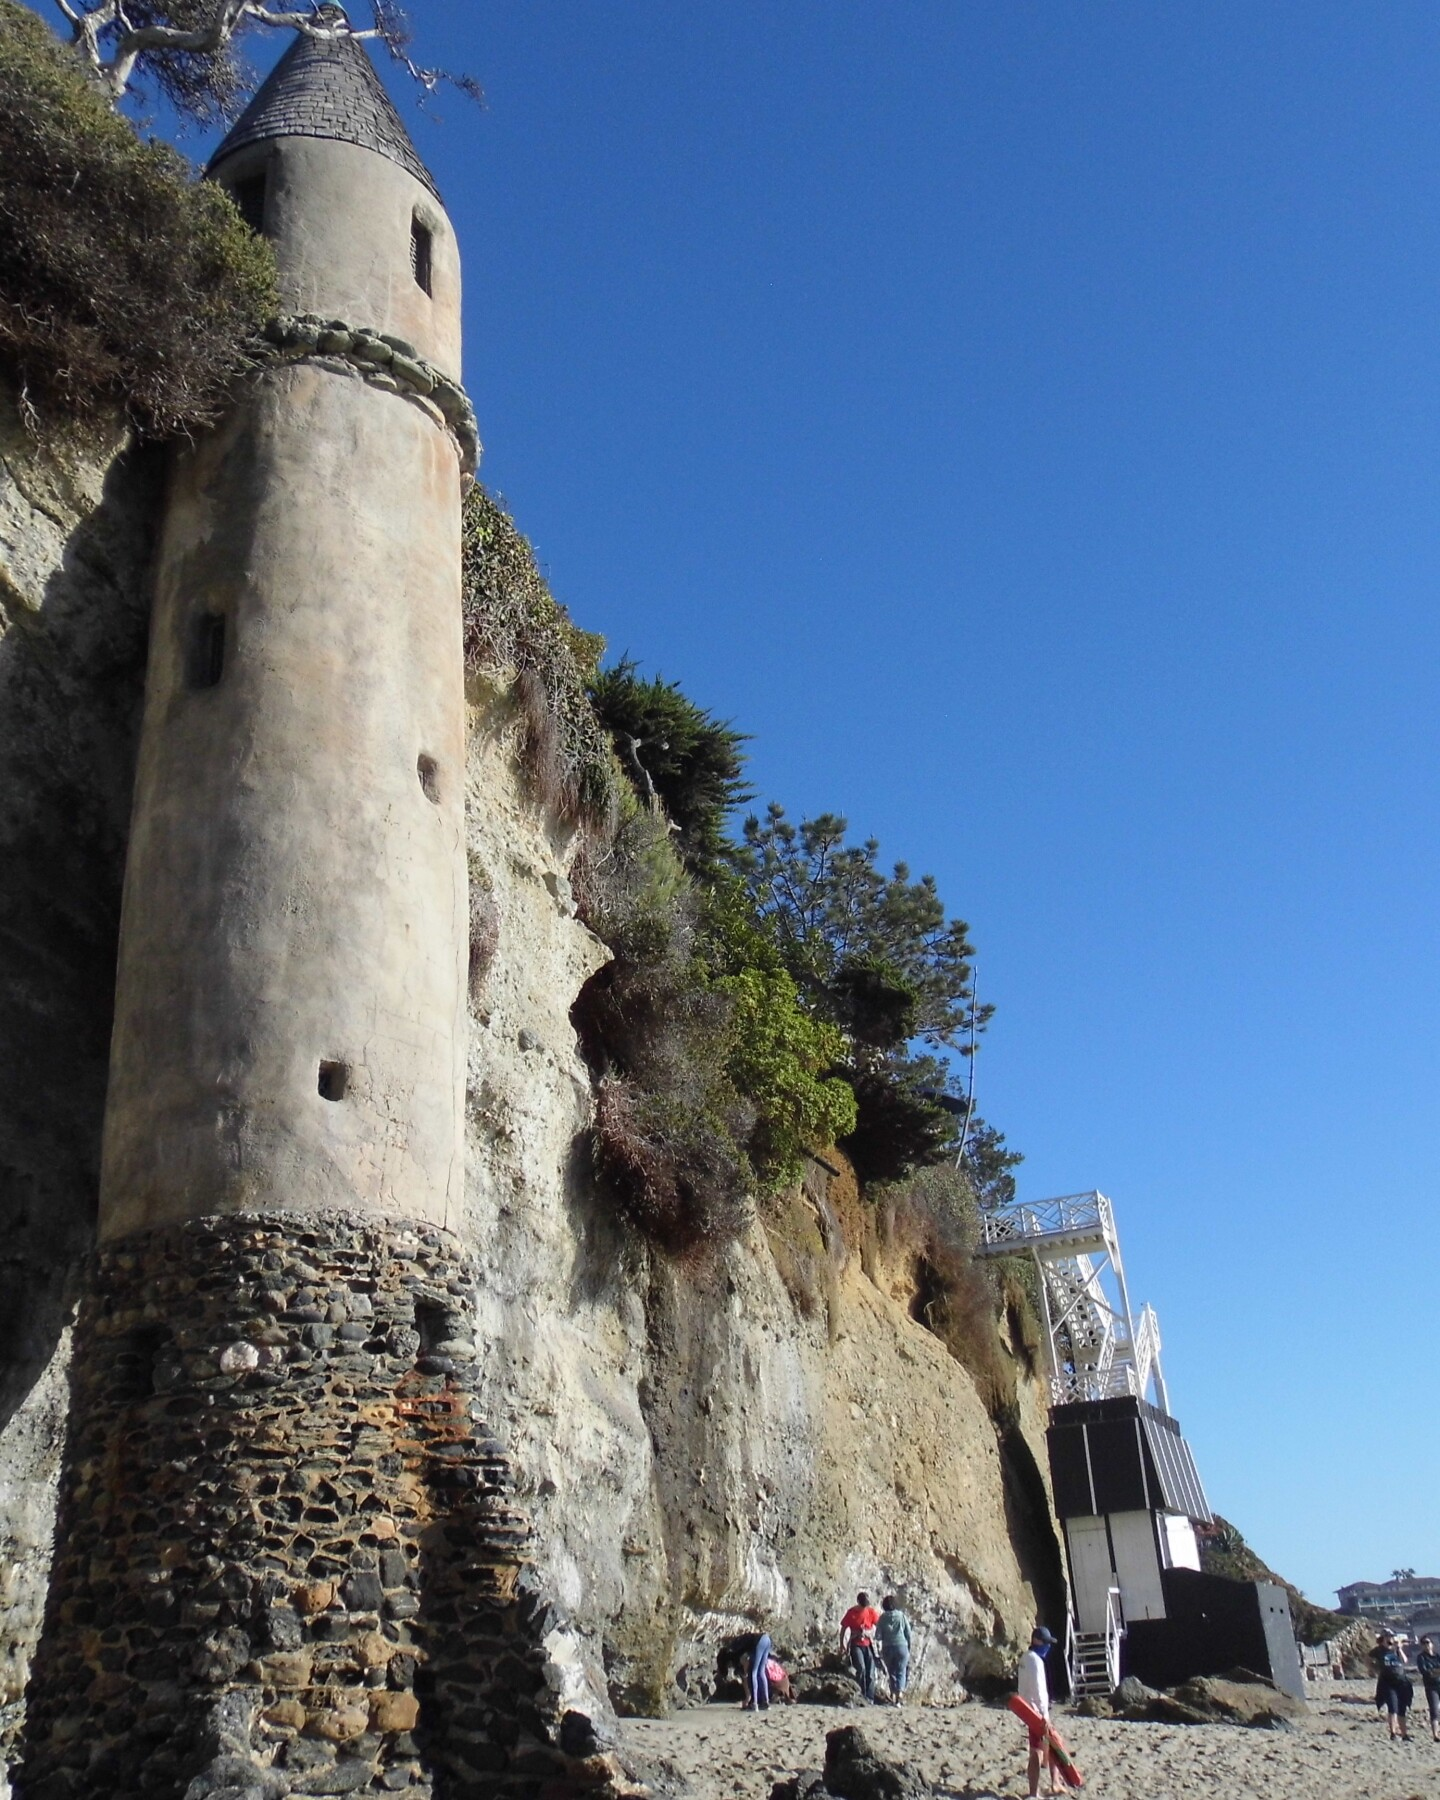 Locals walk along the coast of Victoria Beach as the medieval looking tower stands over them.